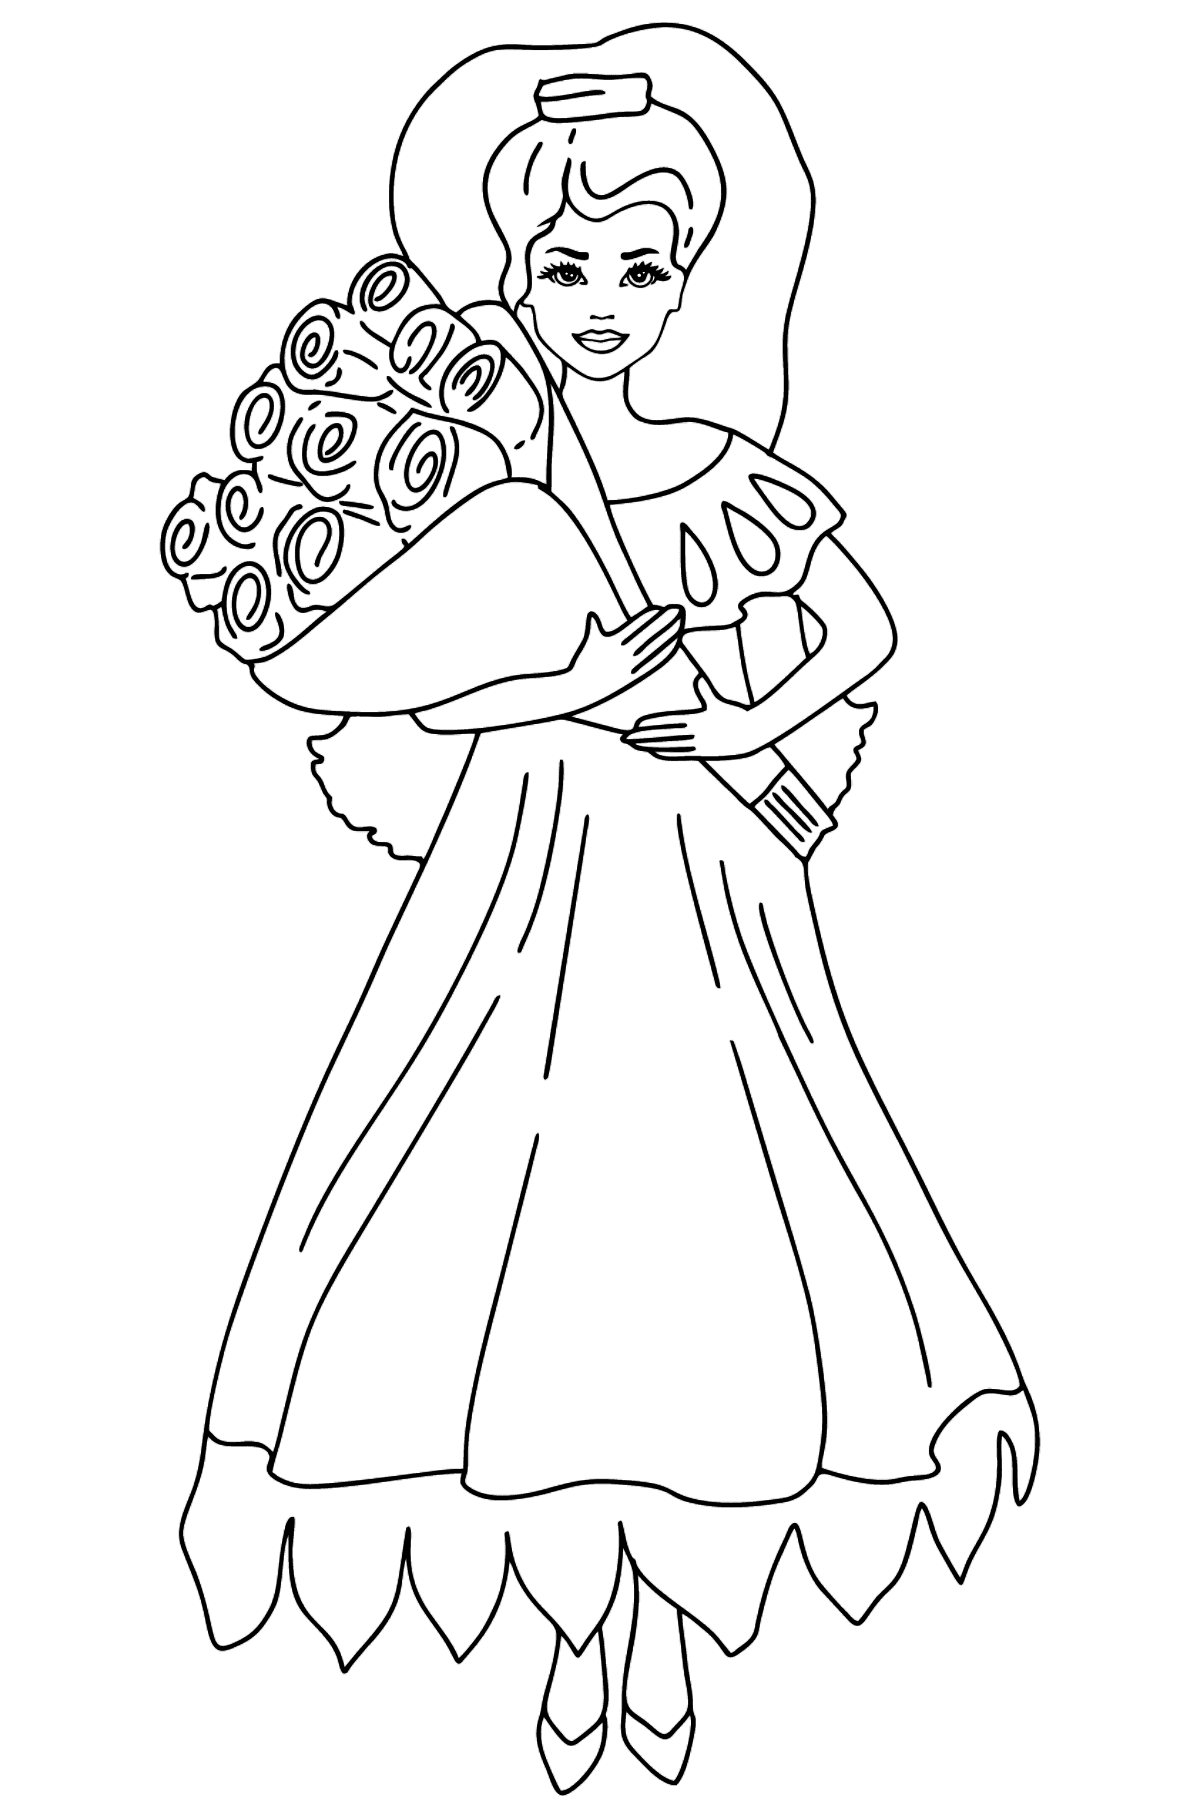 Barbie Doll and a Bouquet of Roses coloring page - Coloring Pages for Kids